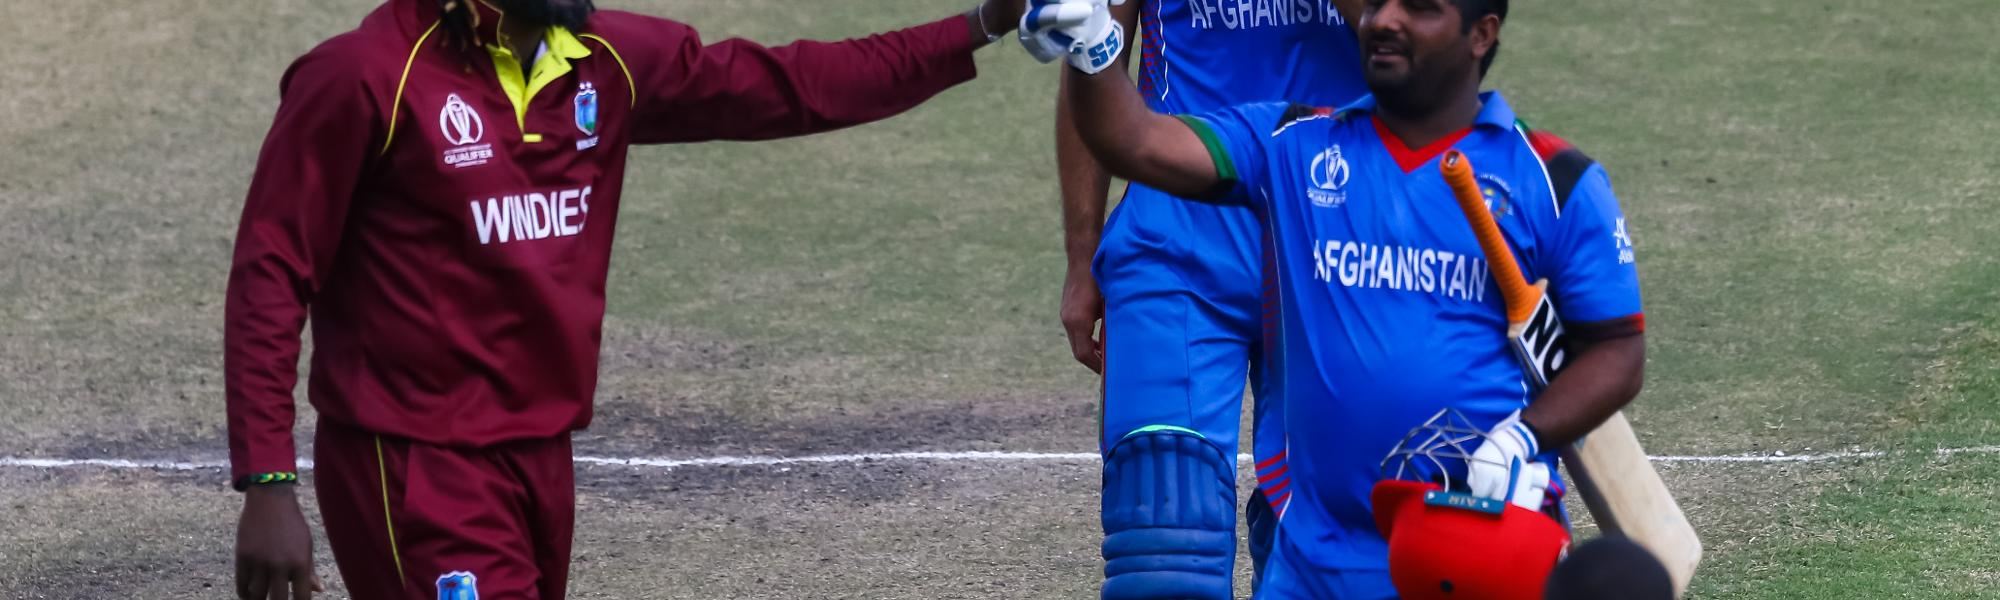 Afghan batsman M.Shahzad receives a consiliatory high five from Chris Gayle as he leaves the pitch after making 84 runs during the ICC Cricket World Cup Qualifier Trophy, Harare Sports Club March 25 2018 (©ICC).